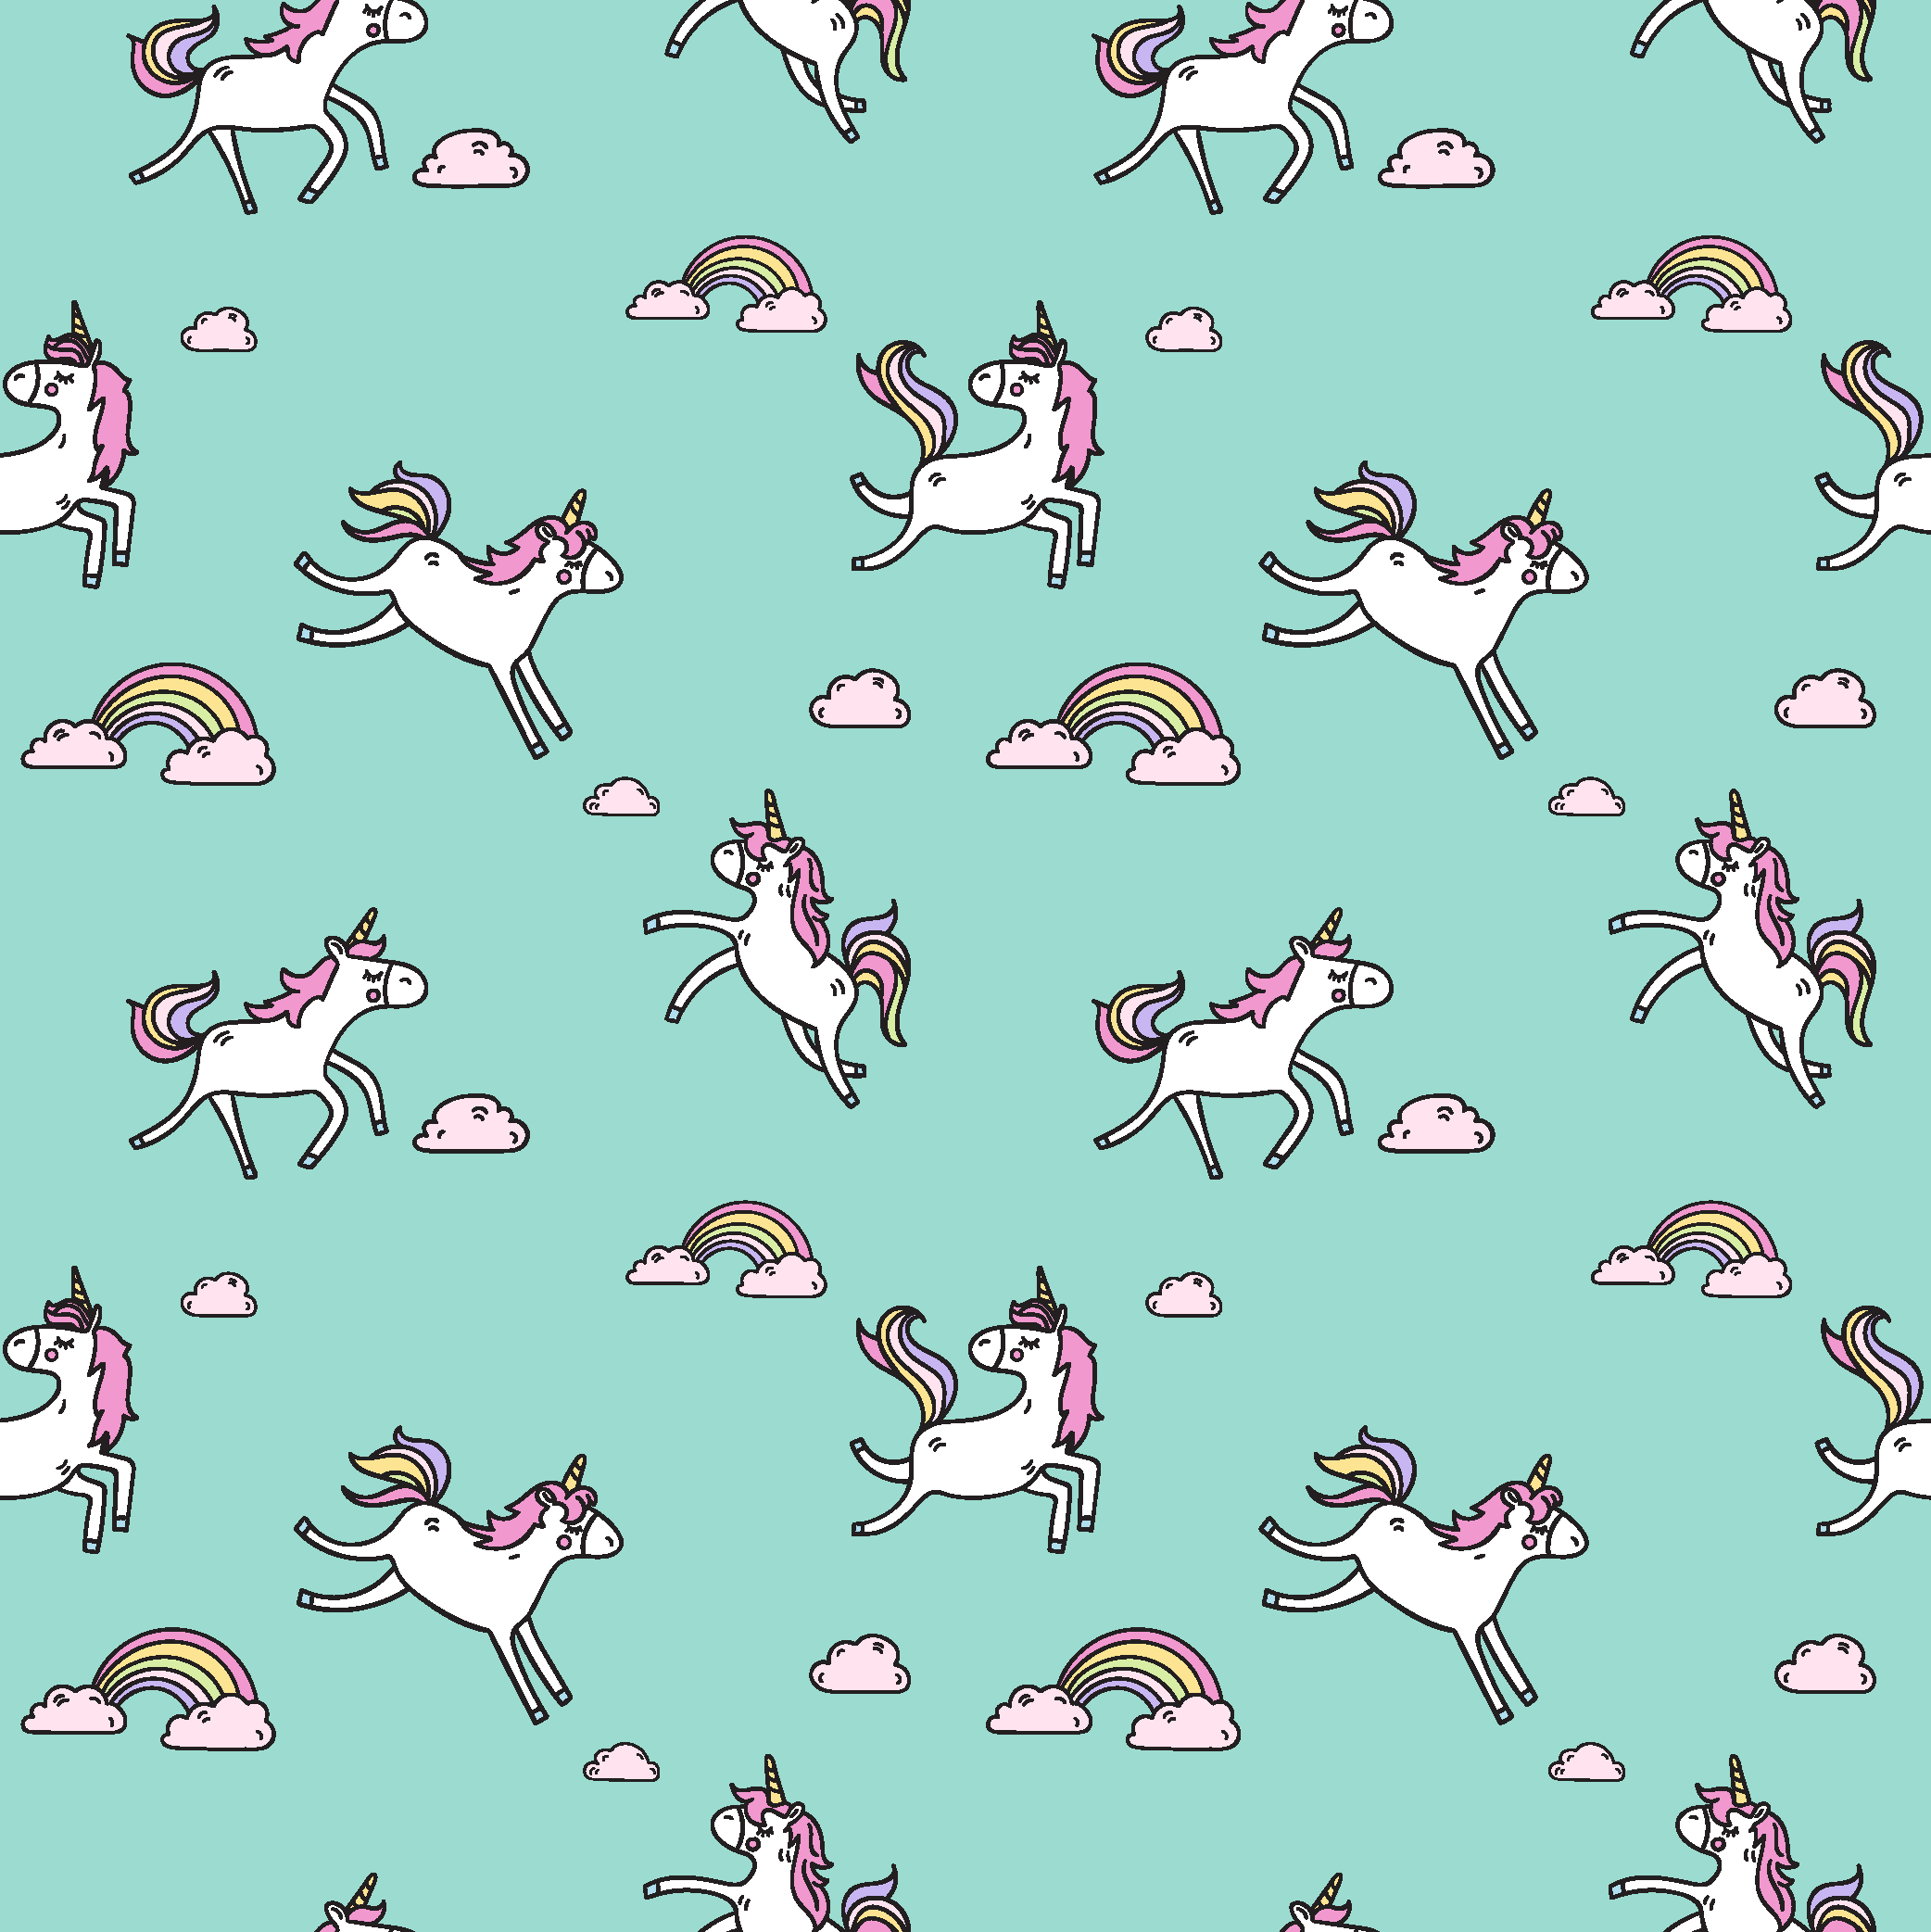 unicorn patterns-01.png